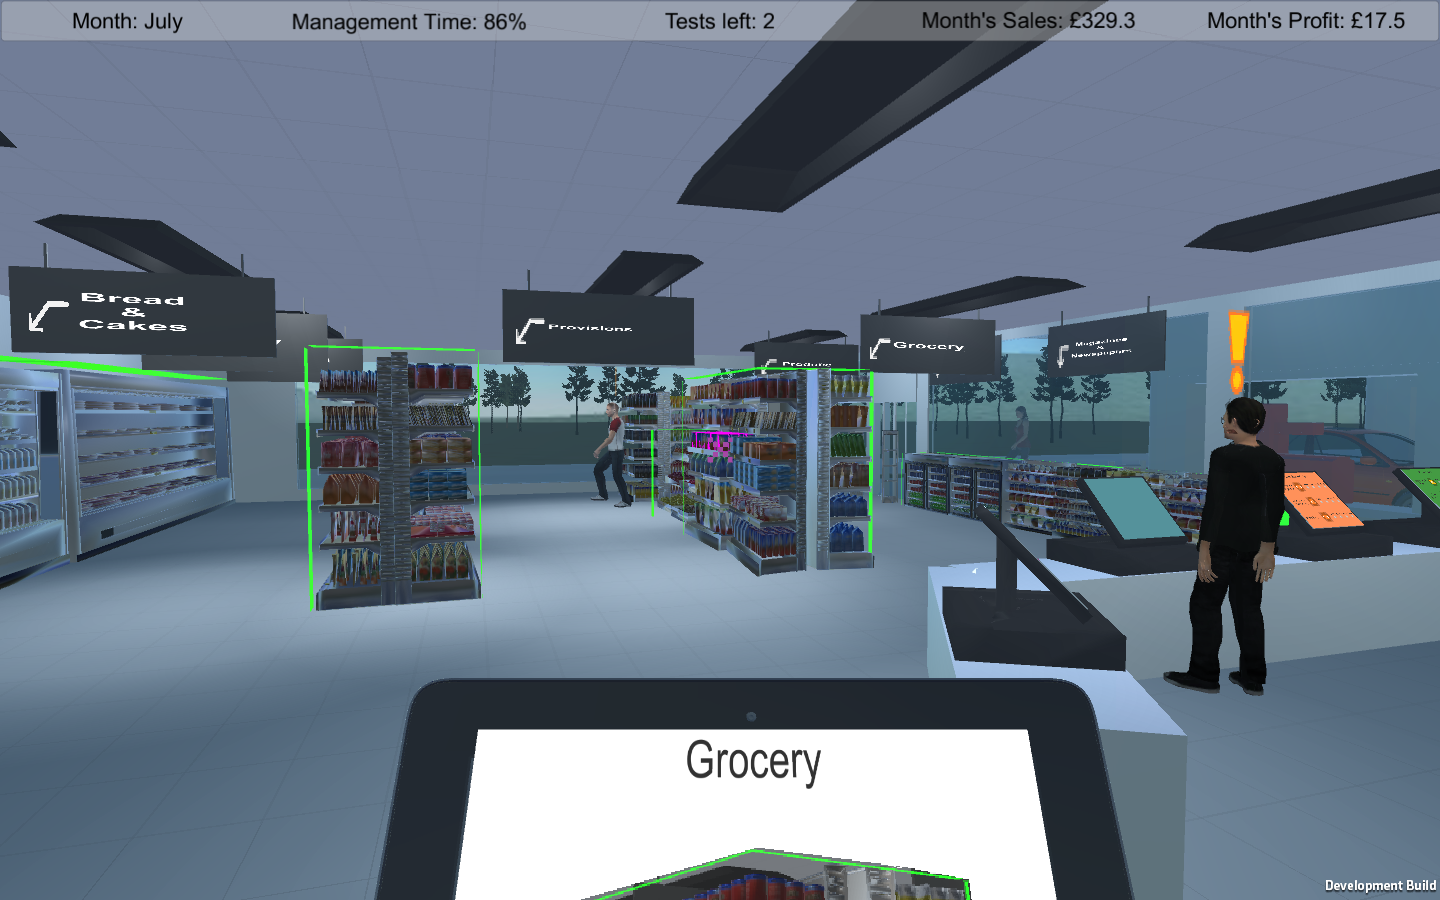 new 3d version of manage business simulation game launched